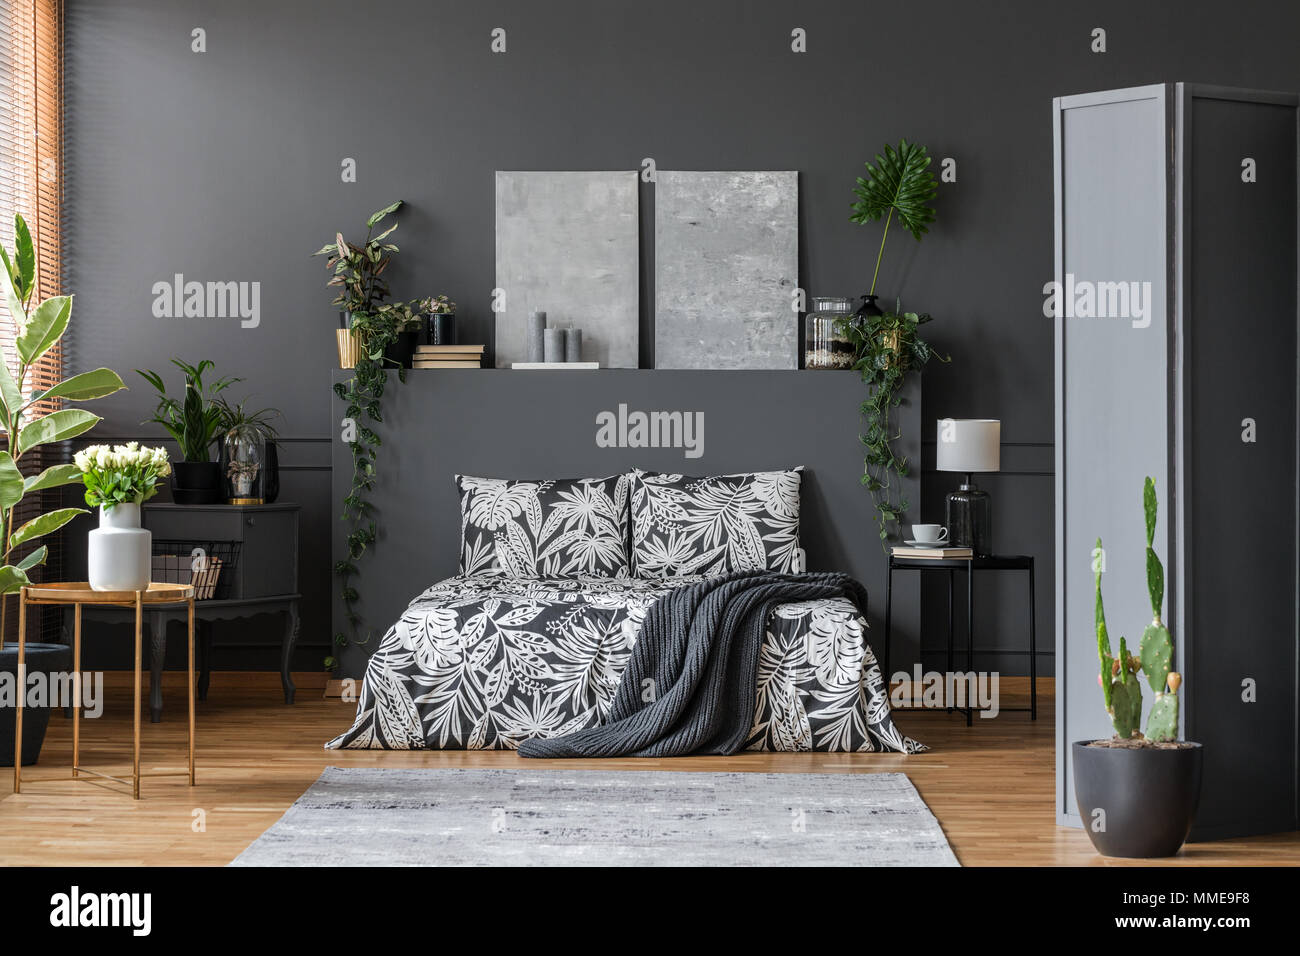 Floral pattern black bedding in a stylish dark gray bedroom interior with plants and elegant furniture & Floral pattern black bedding in a stylish dark gray bedroom ...